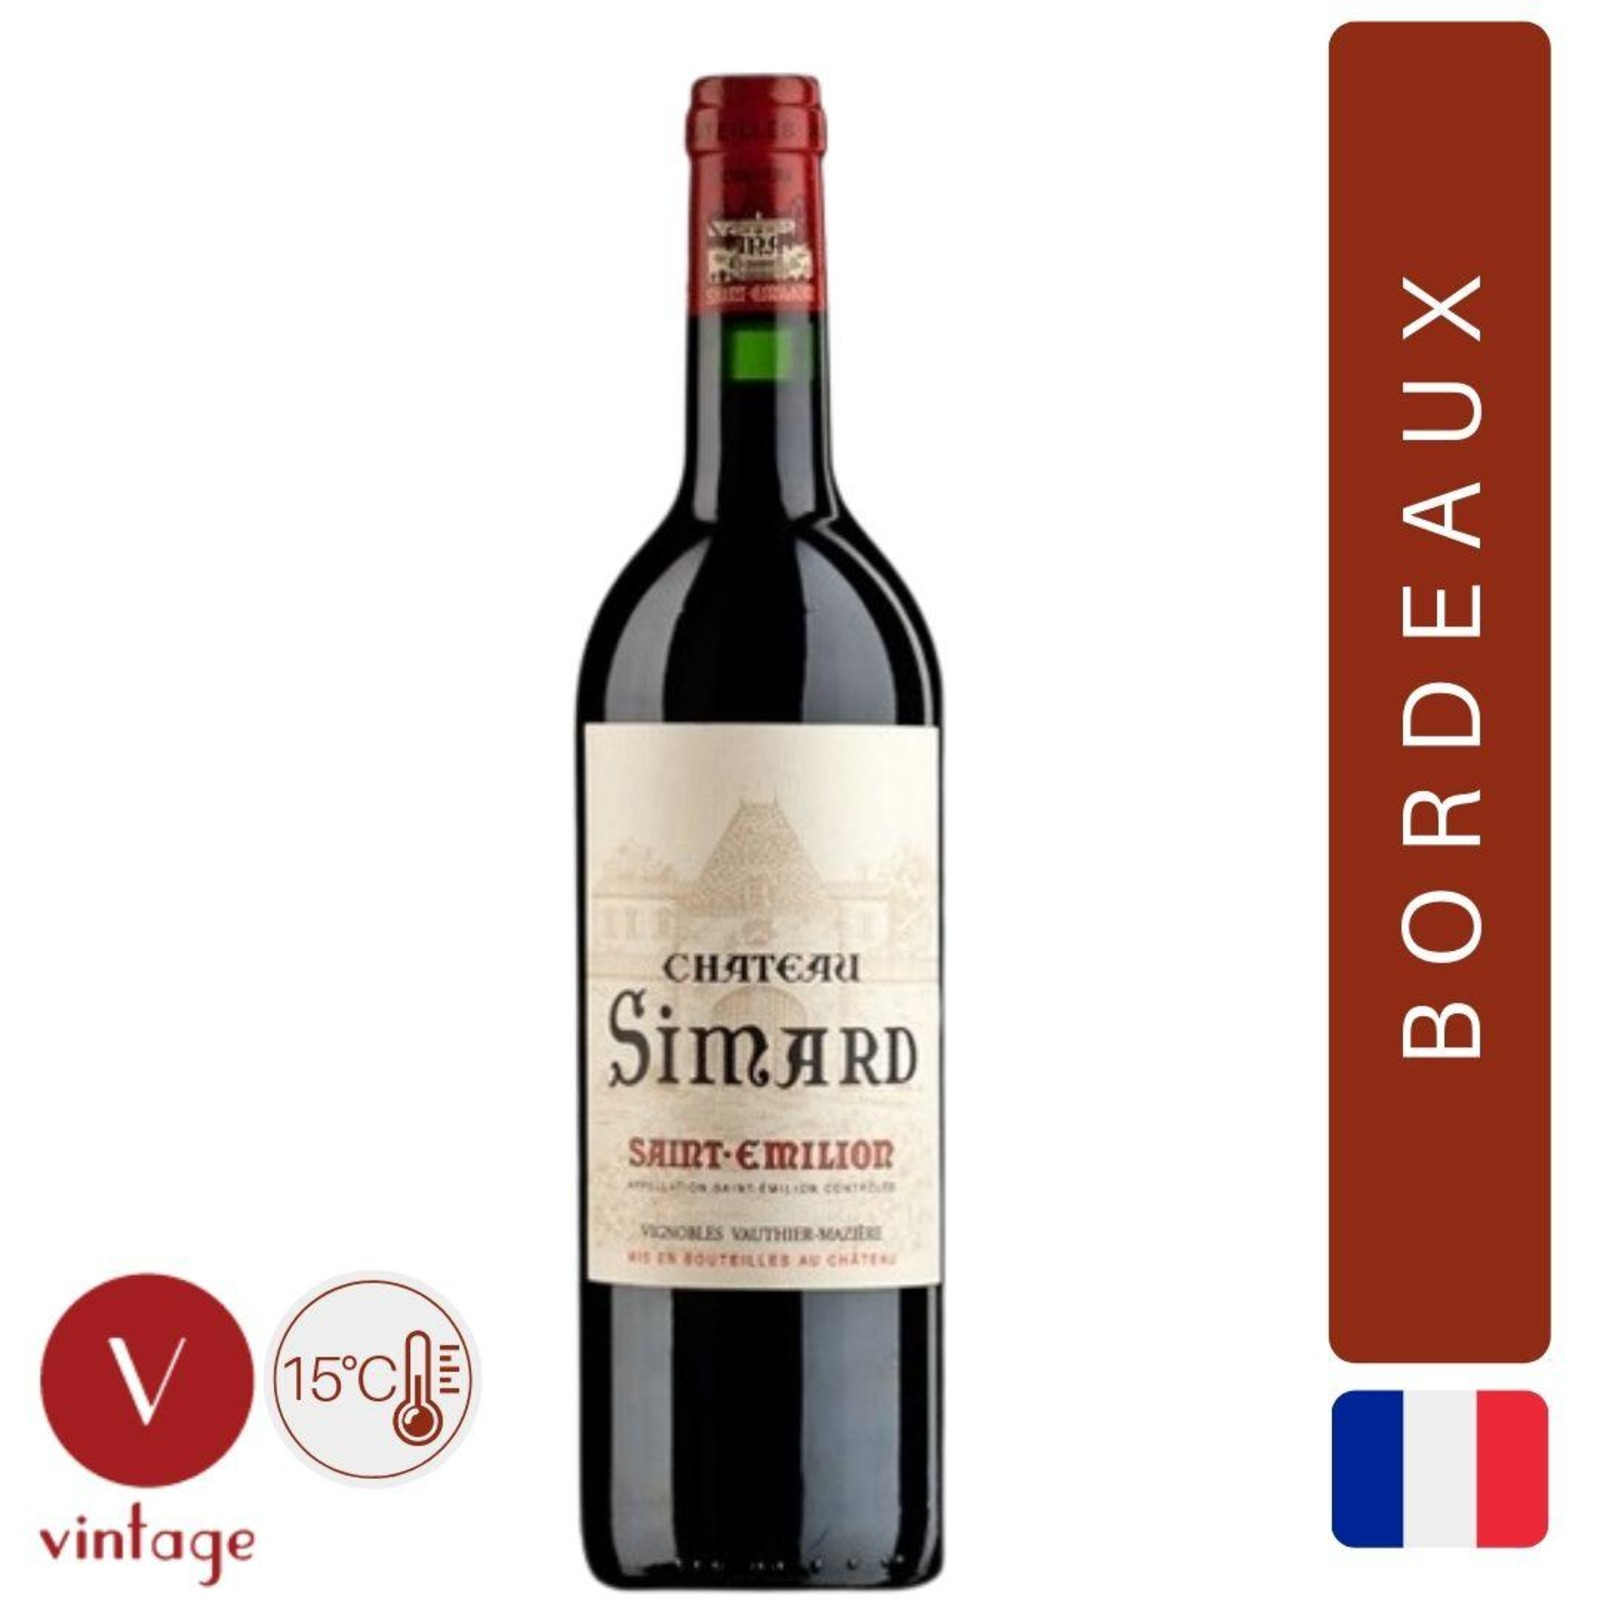 Chateau Simard - Bordeaux Red Wine